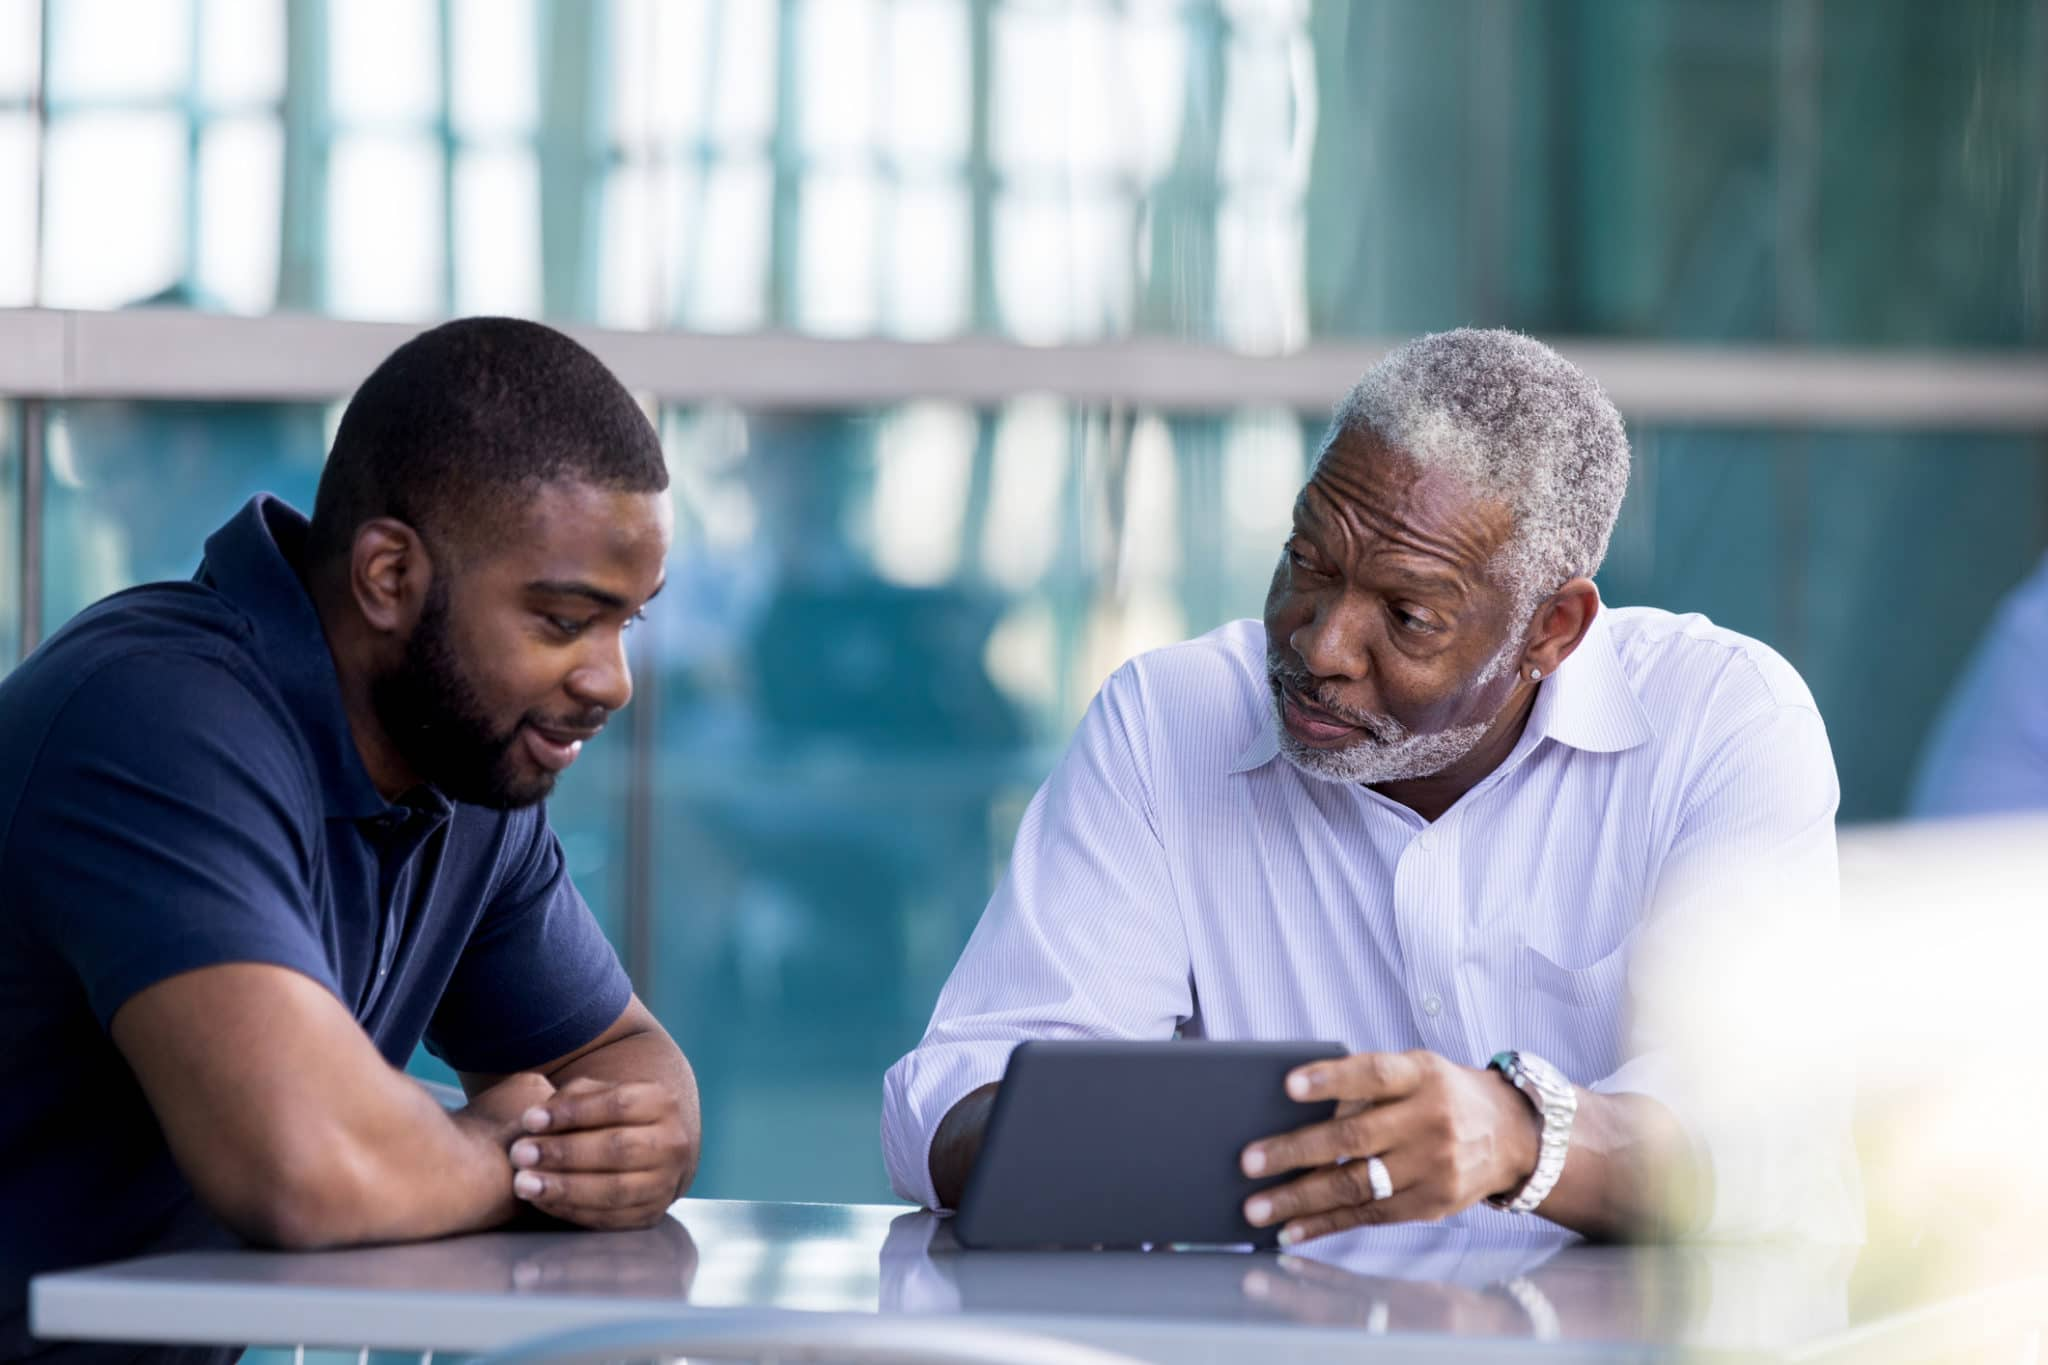 A senior African American businessman shows a male colleague something on a digital tablet while sitting outside on an office patio.